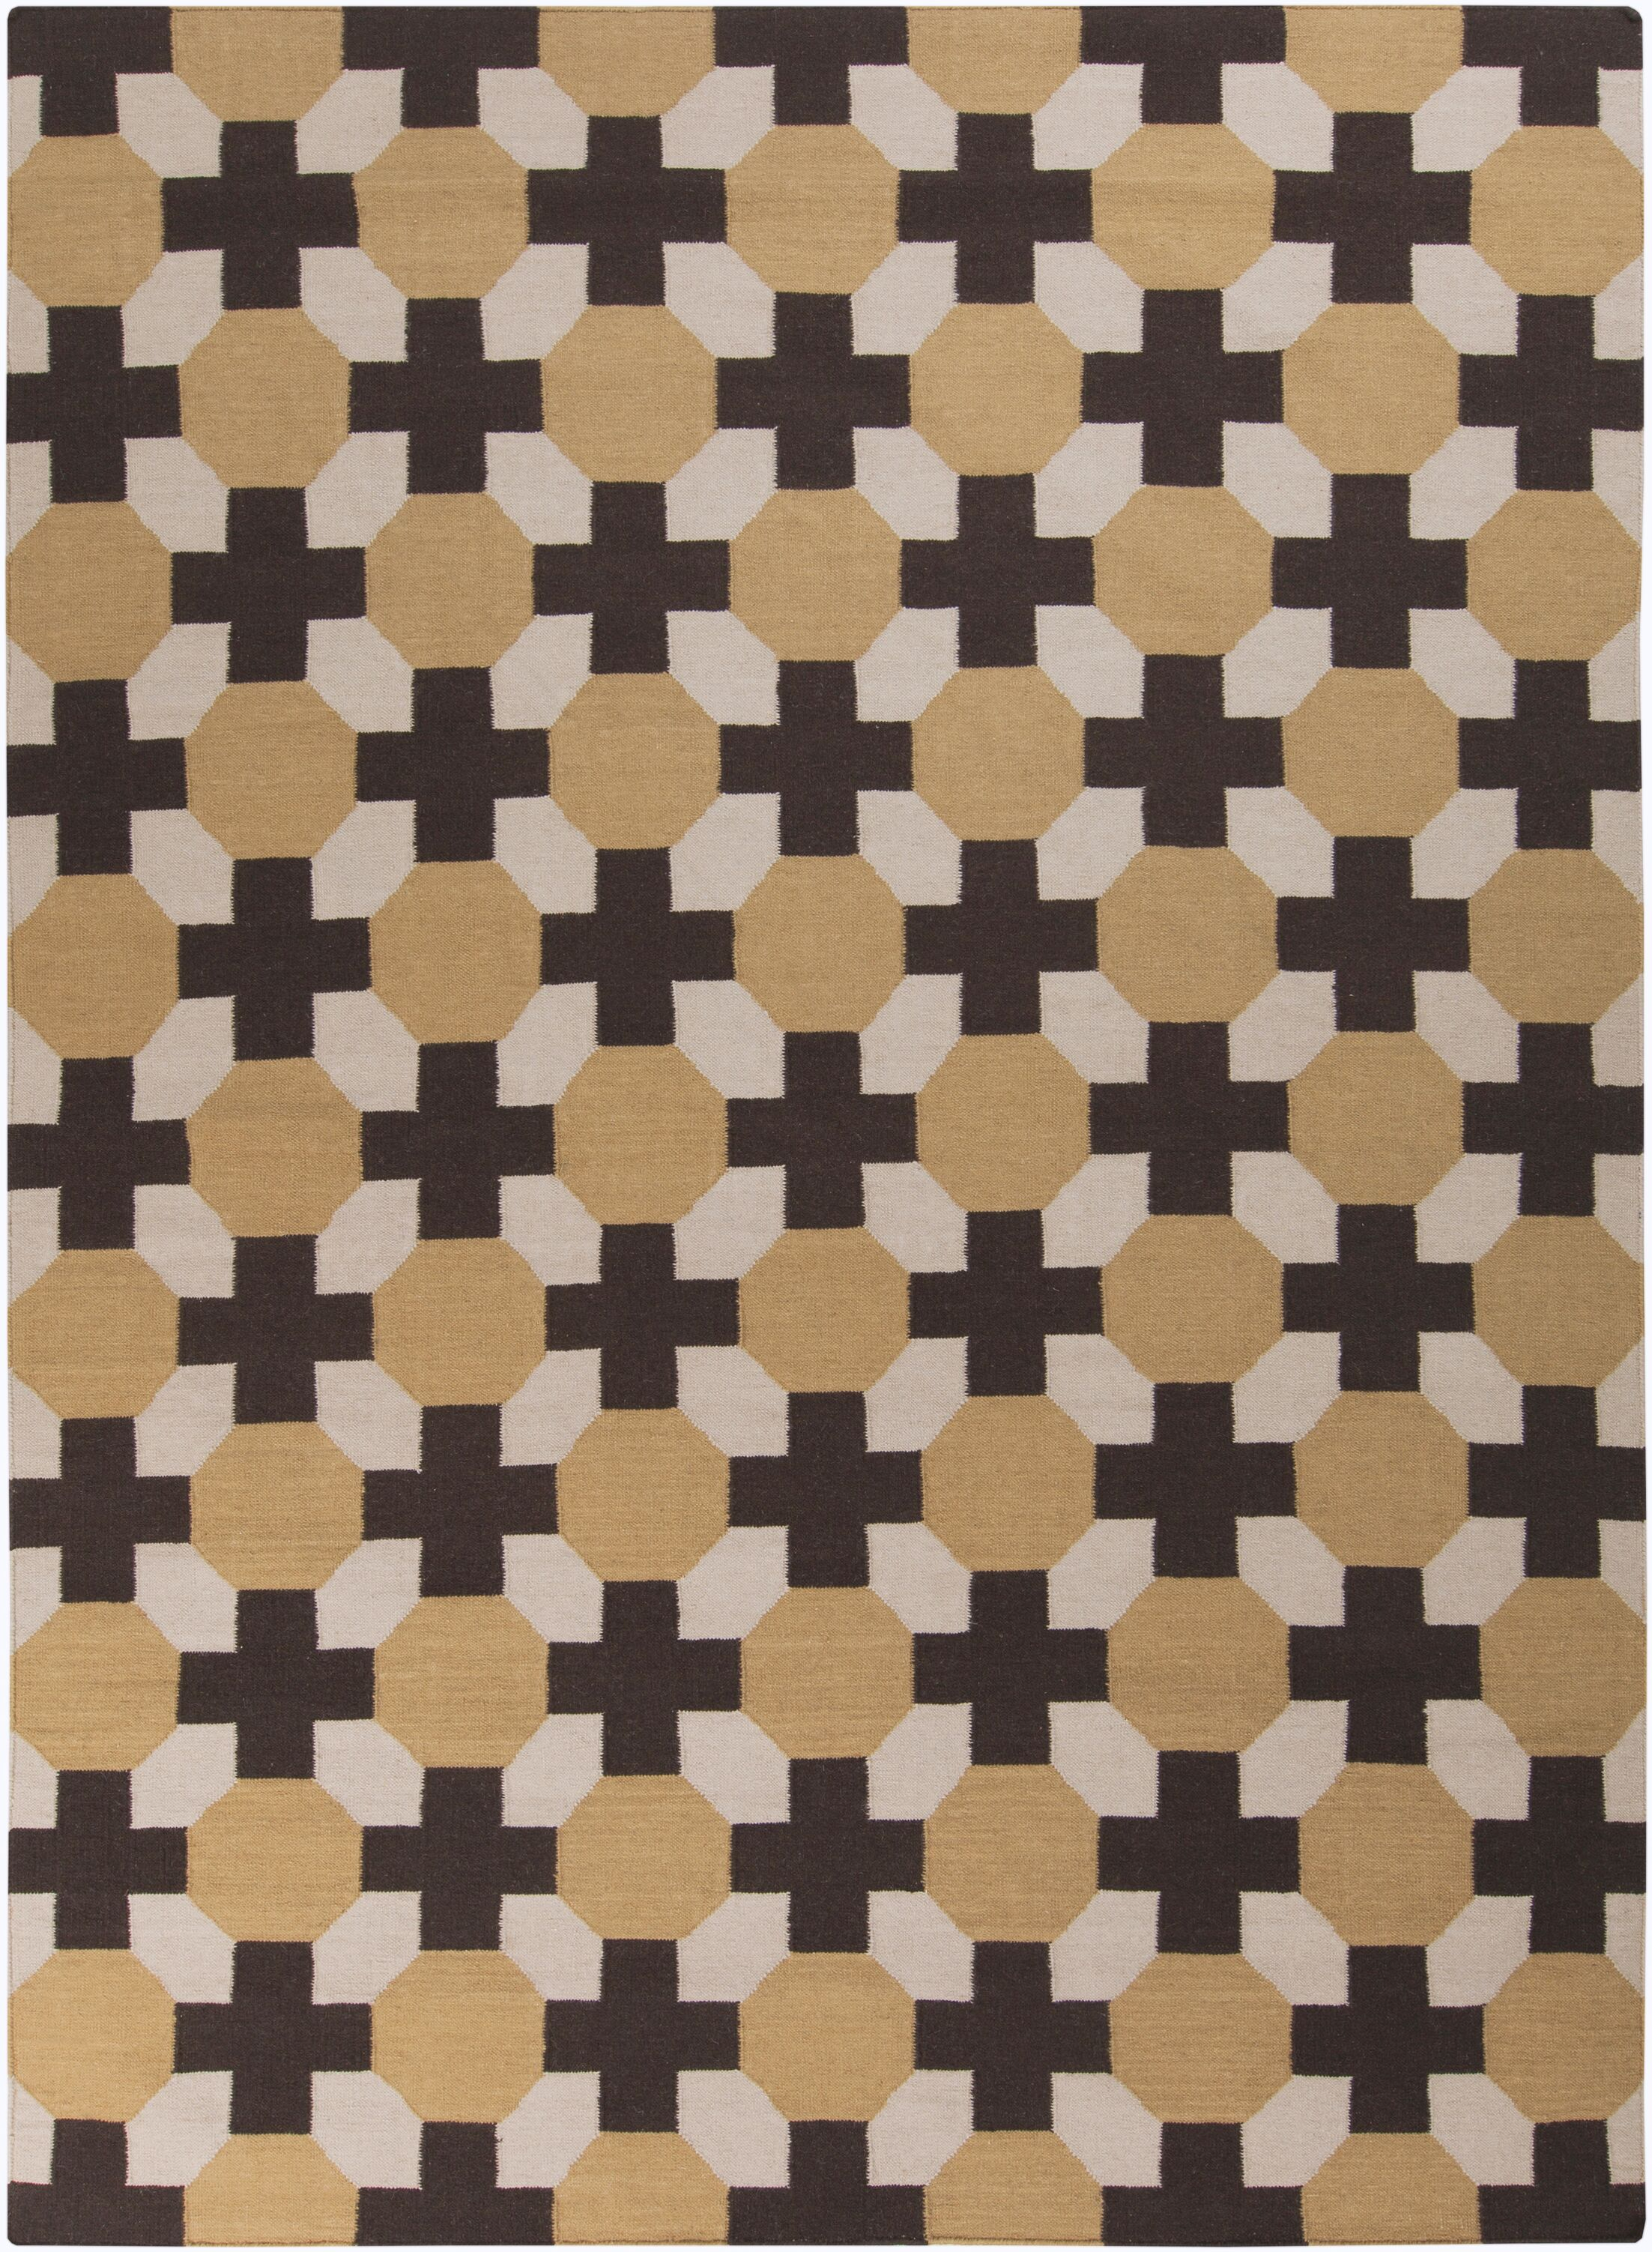 Wallace Checked Area Rug Rug Size: Rectangle 8' x 11'